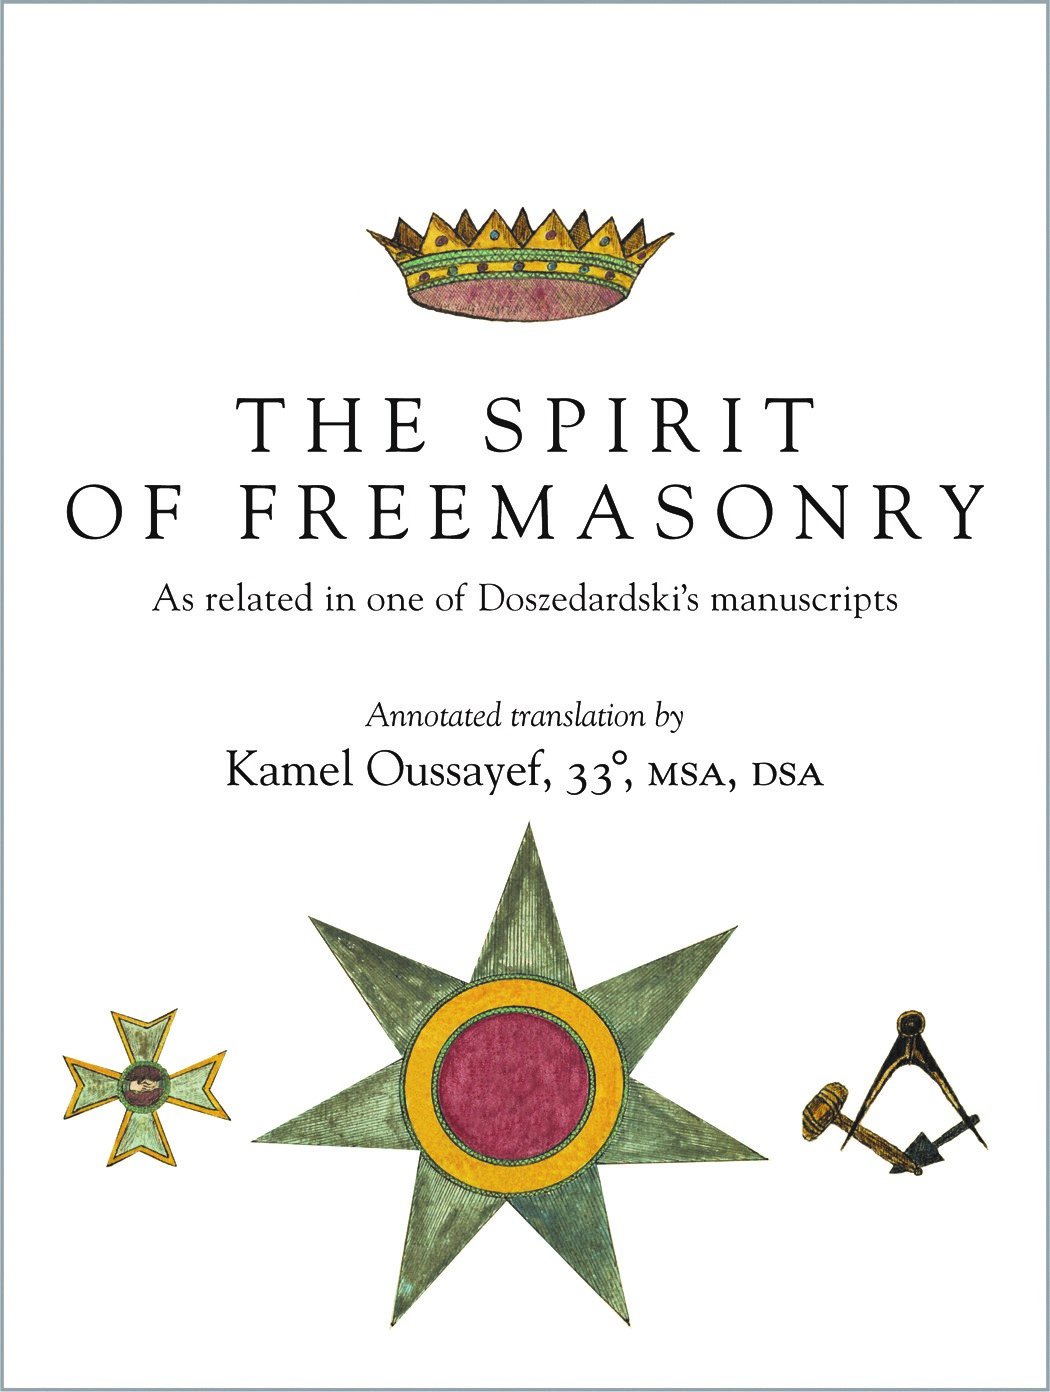 Freemason books for sale